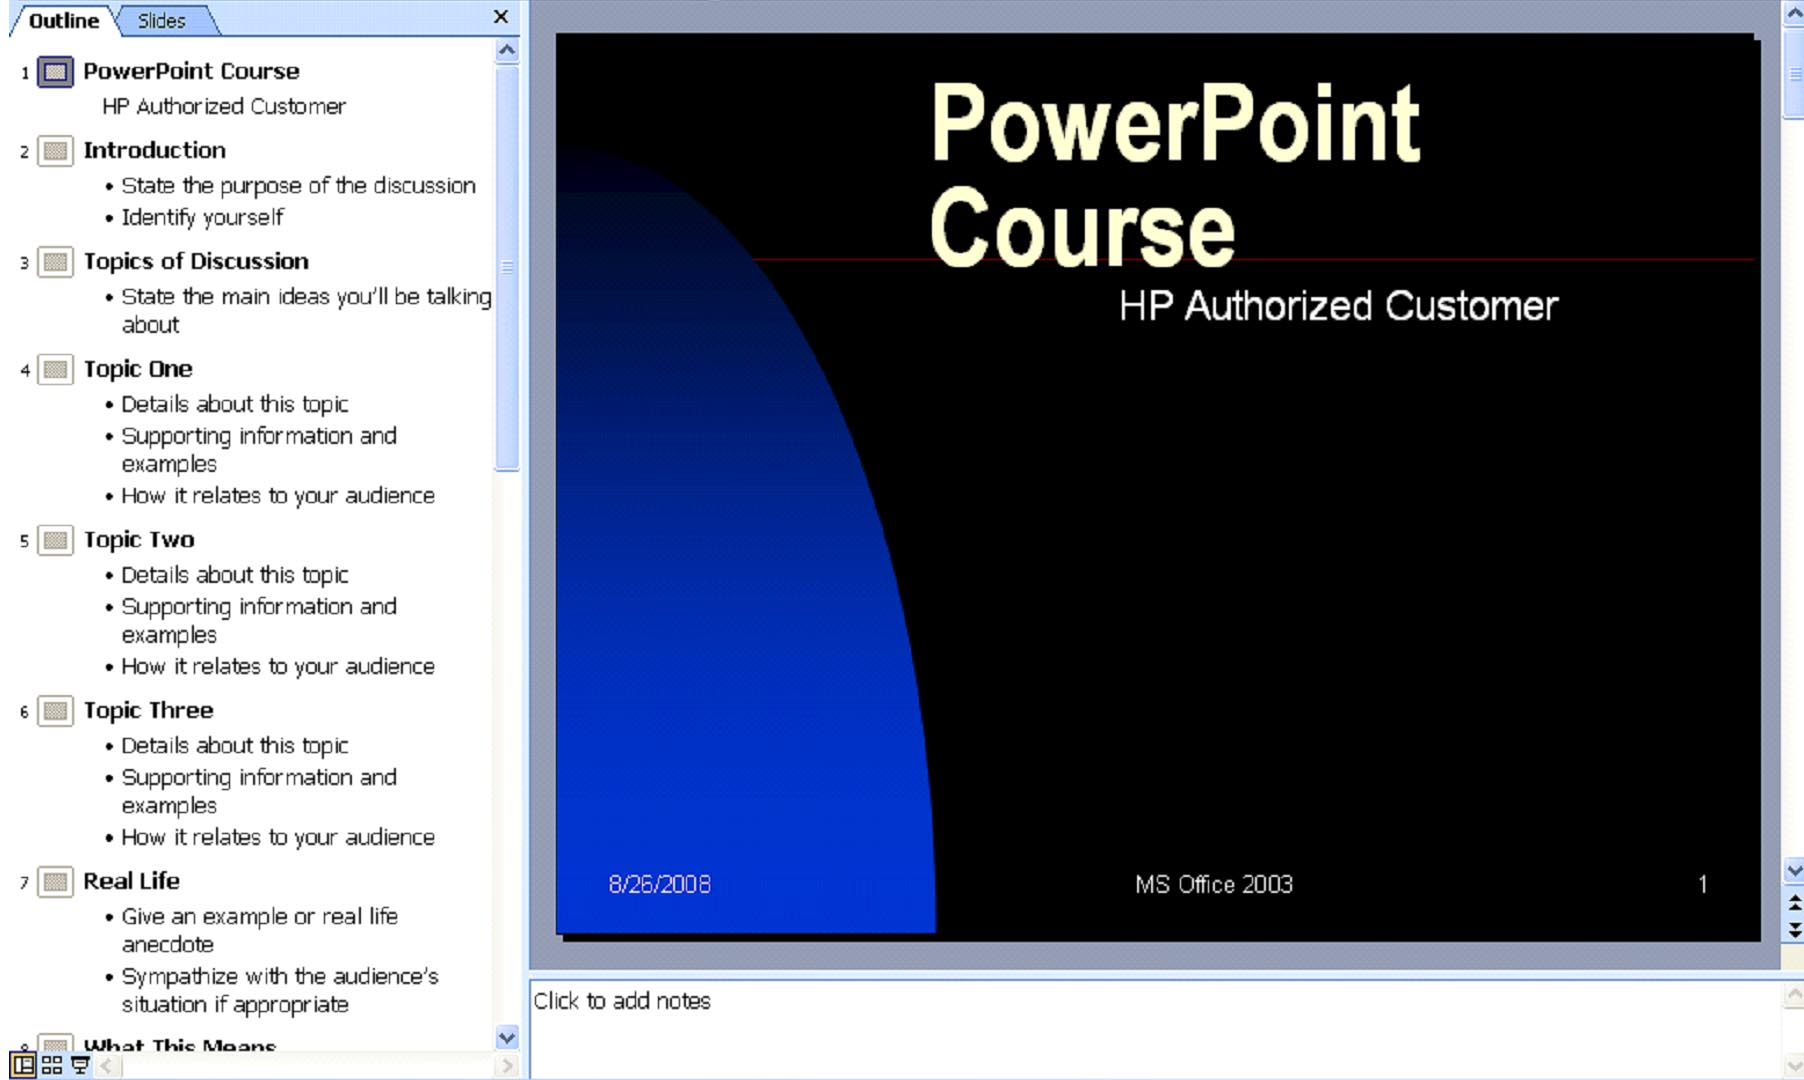 Powerpoint 2003 how to create presentations universalclass now you can click on any slide in the outline pane and it will appear in the slide panel to change the text in any slide select the slide in the outline toneelgroepblik Gallery